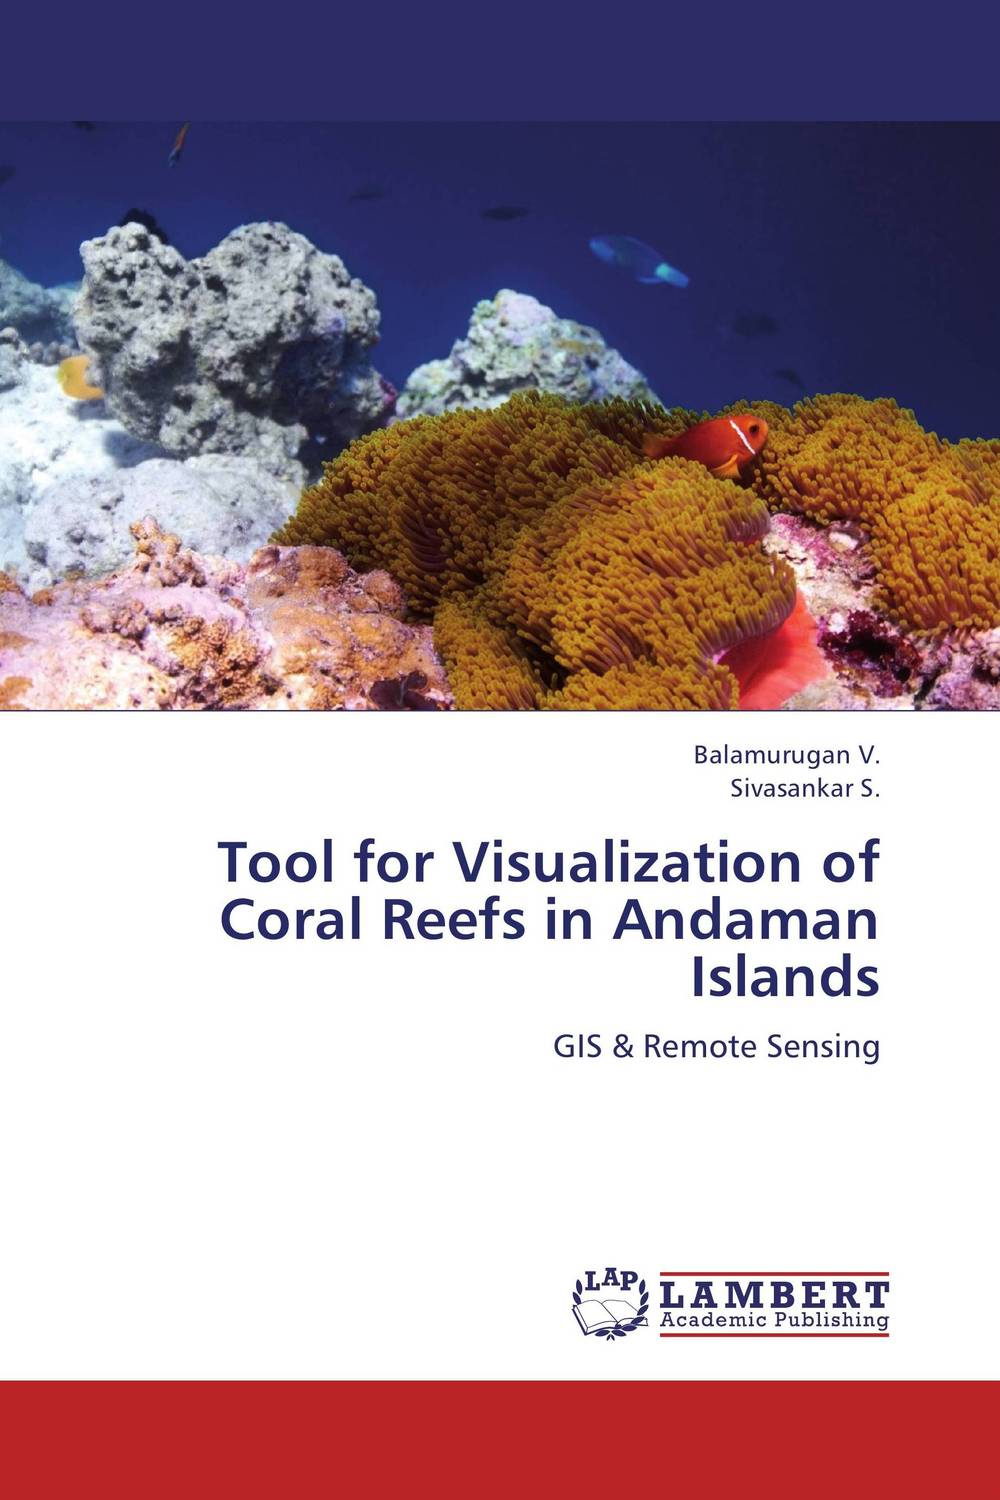 Tool for Visualization of Coral Reefs in Andaman Islands